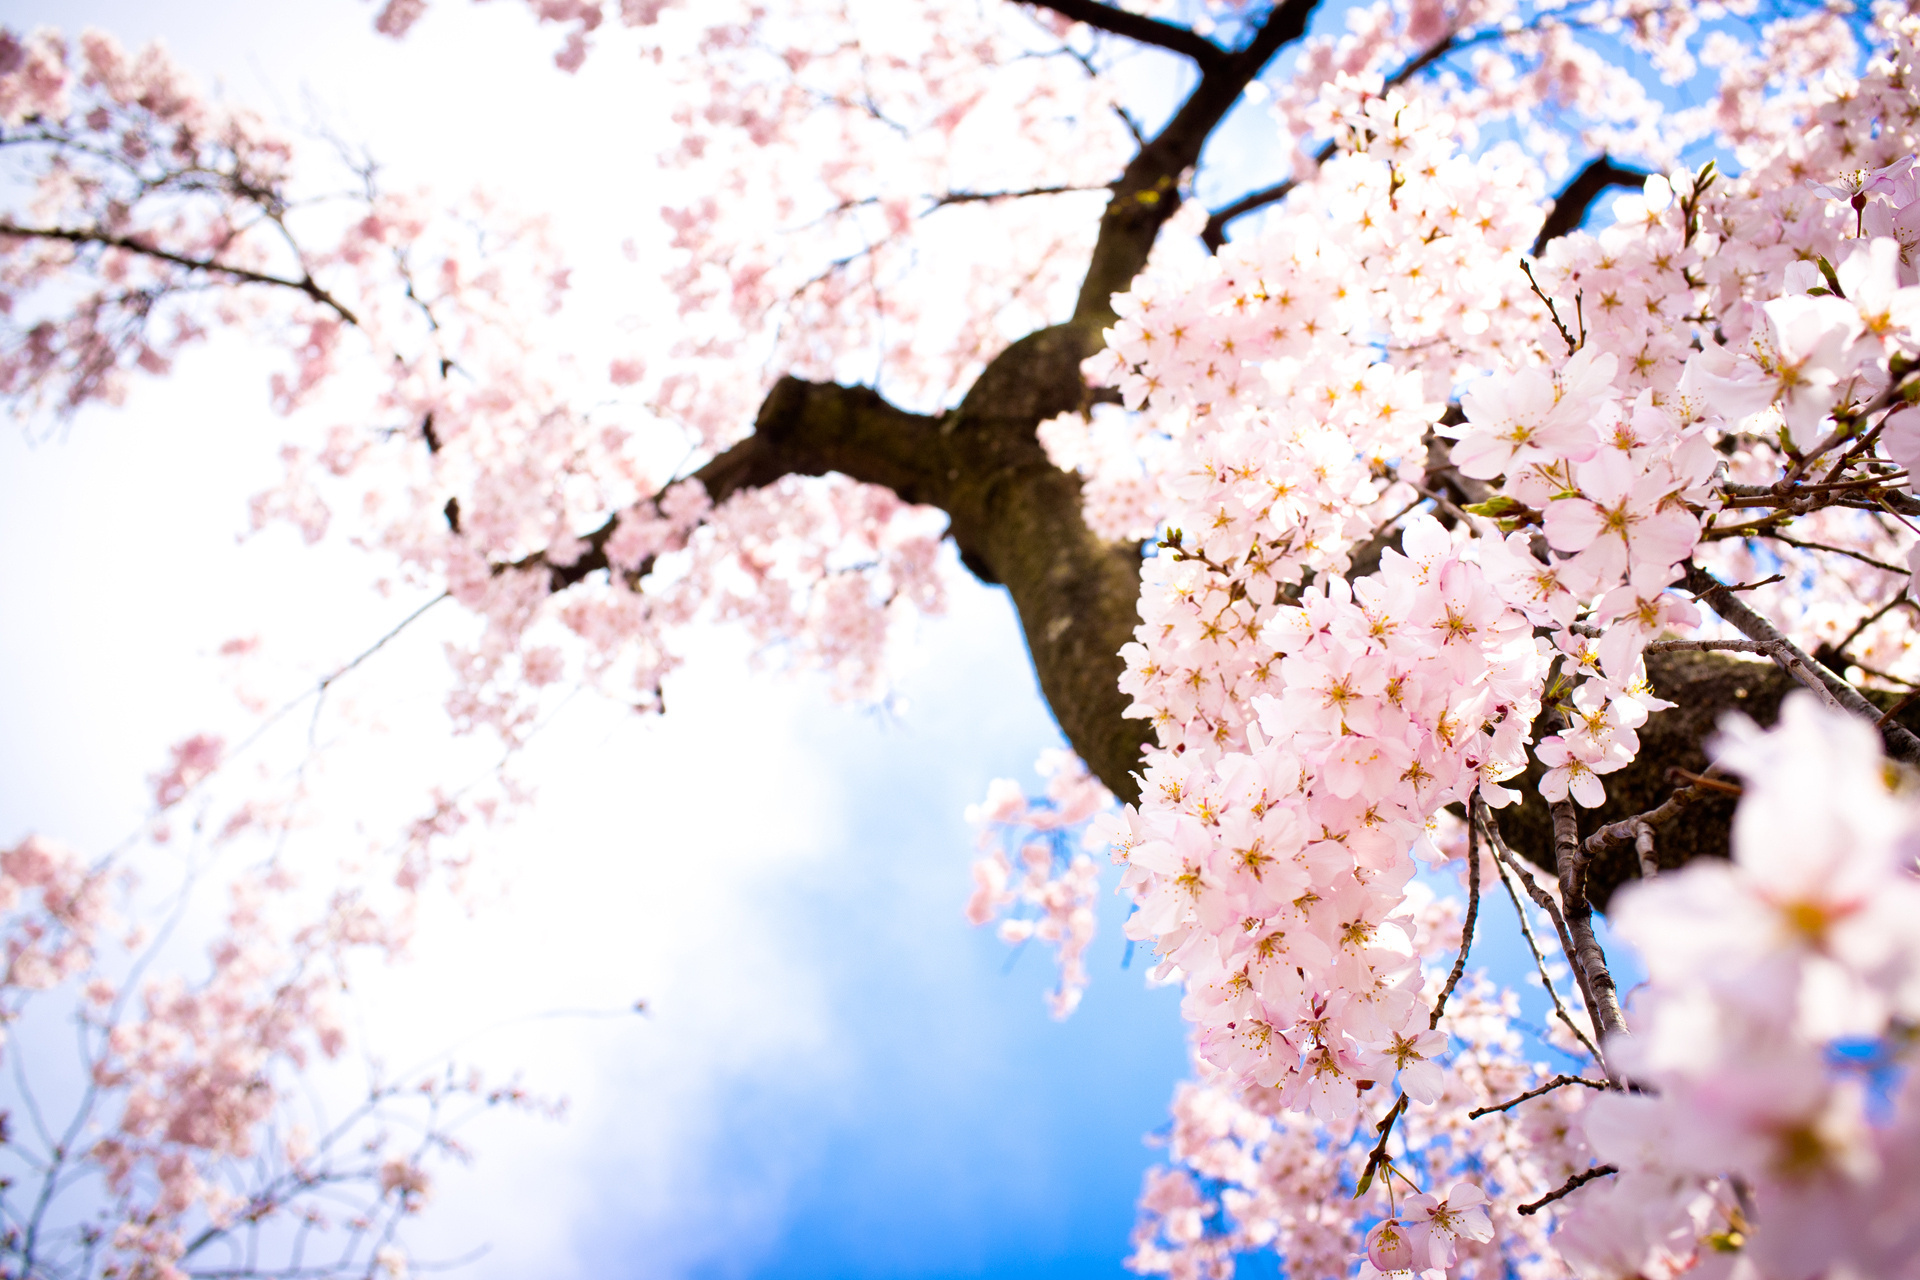 Earth - Blossom  - Tree - Flower Wallpaper